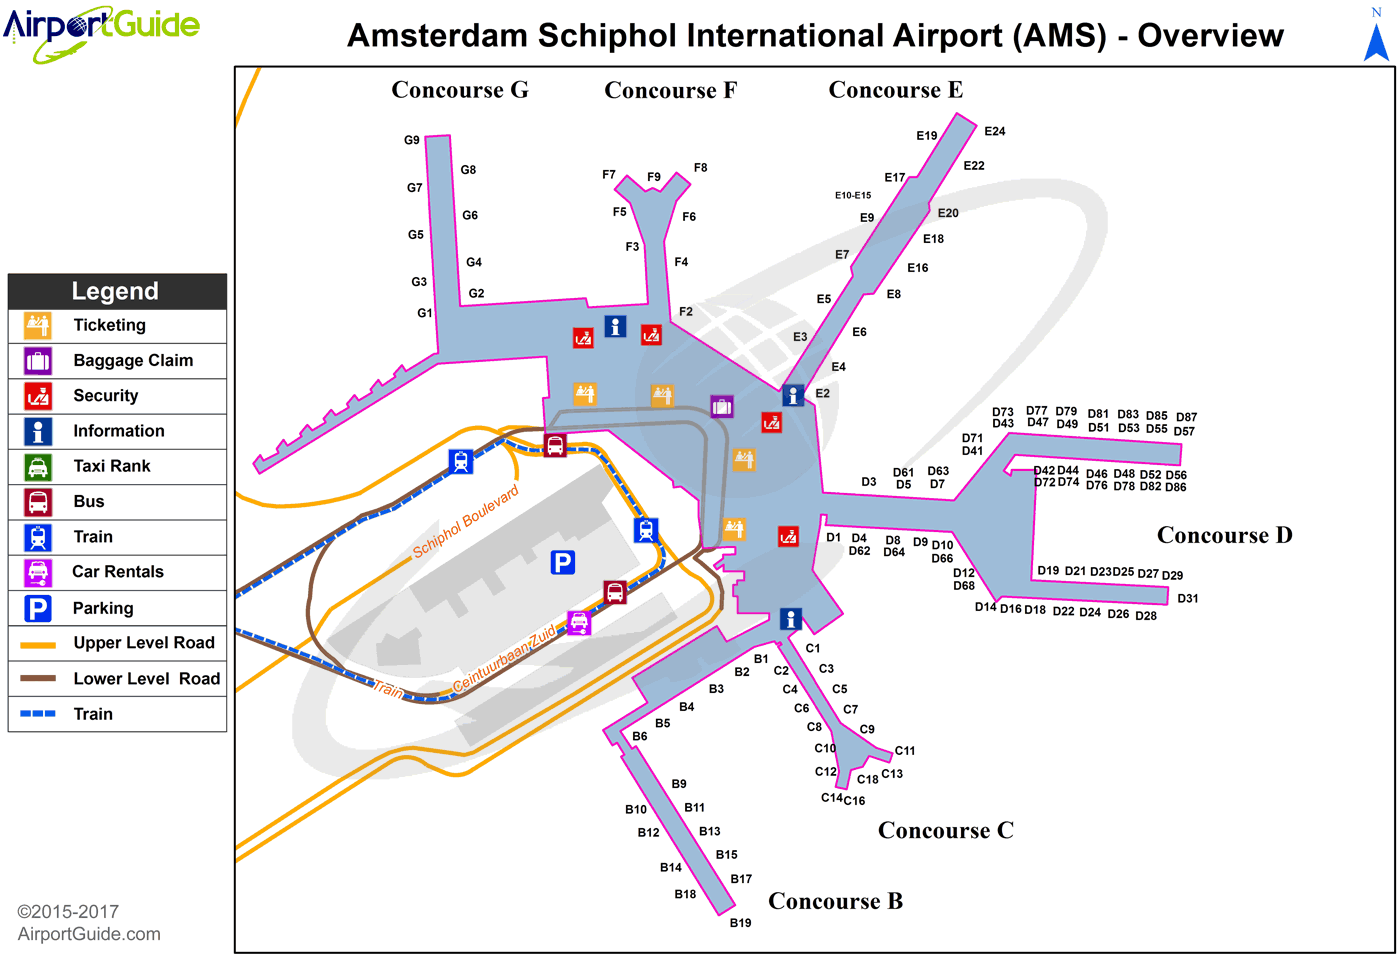 AMS Airport Terminal Map - Overview